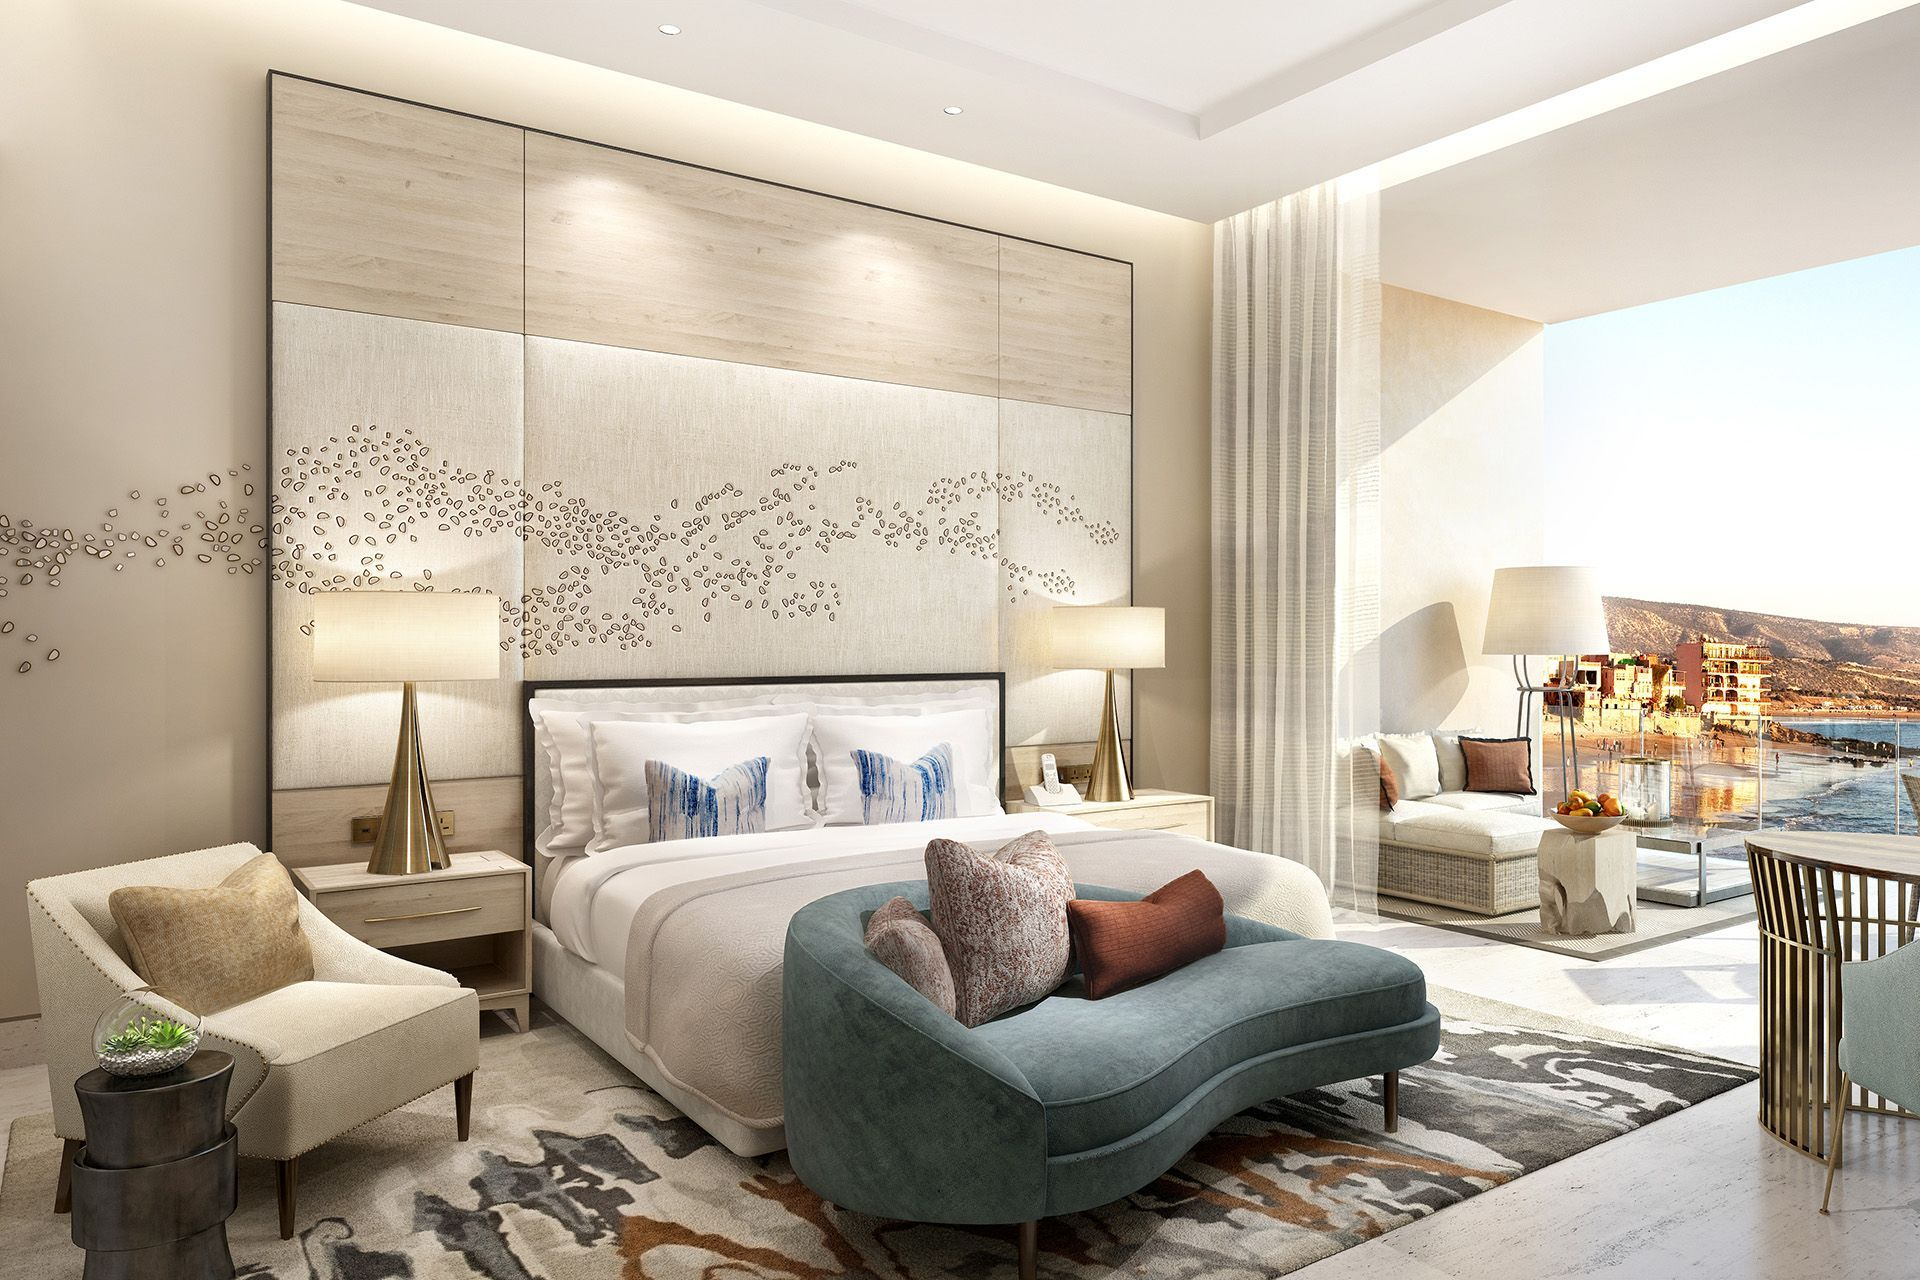 Four seasons taghazout interior designers wimberly for Modern bedroom interior designs